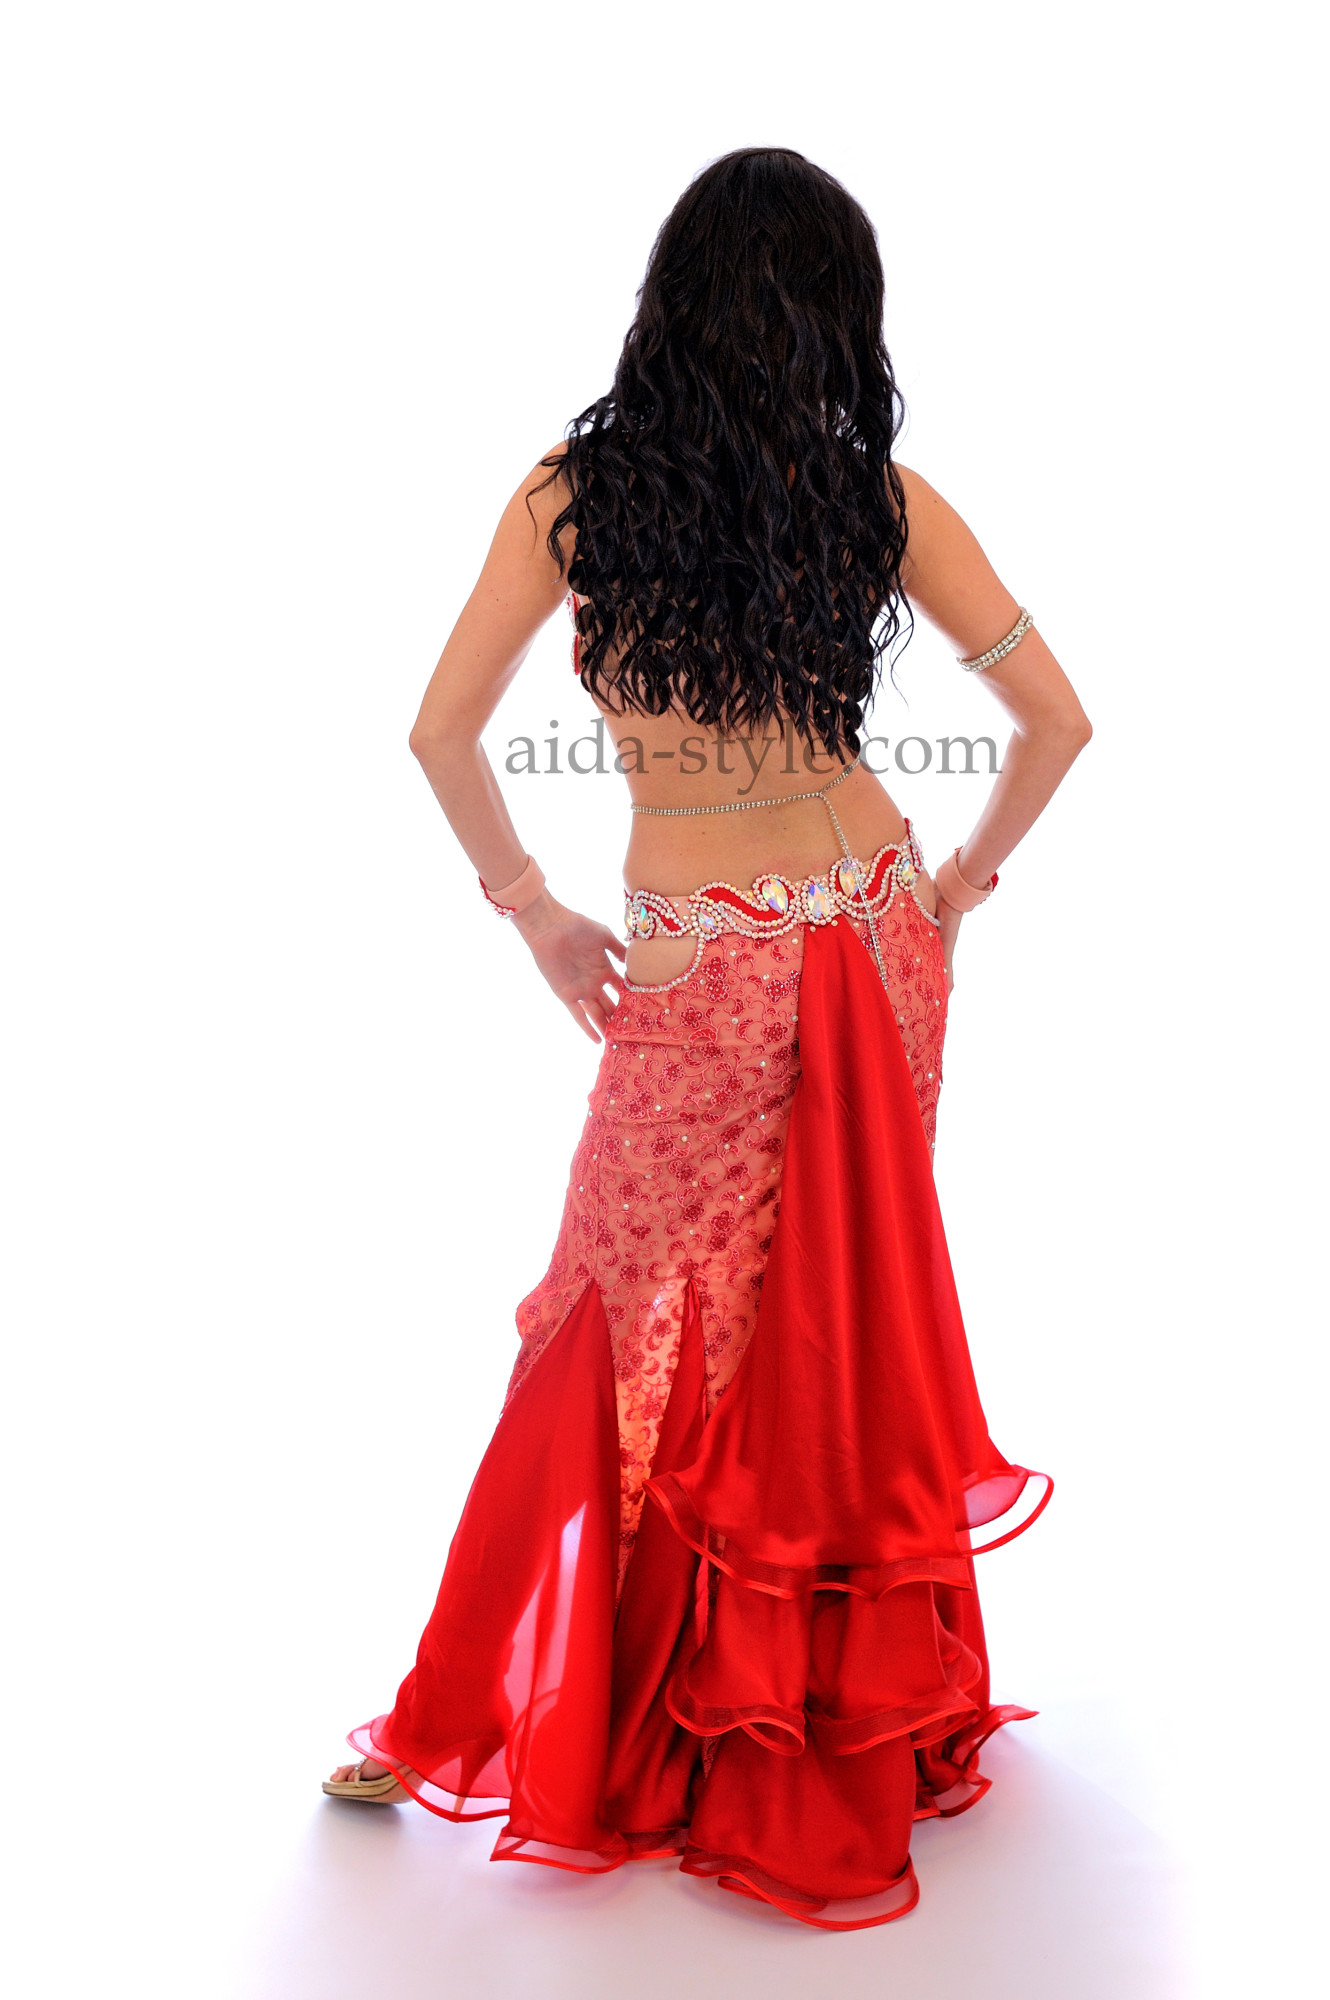 Red professional belly dance suit with white decoration and mermaid skirt with ruffles